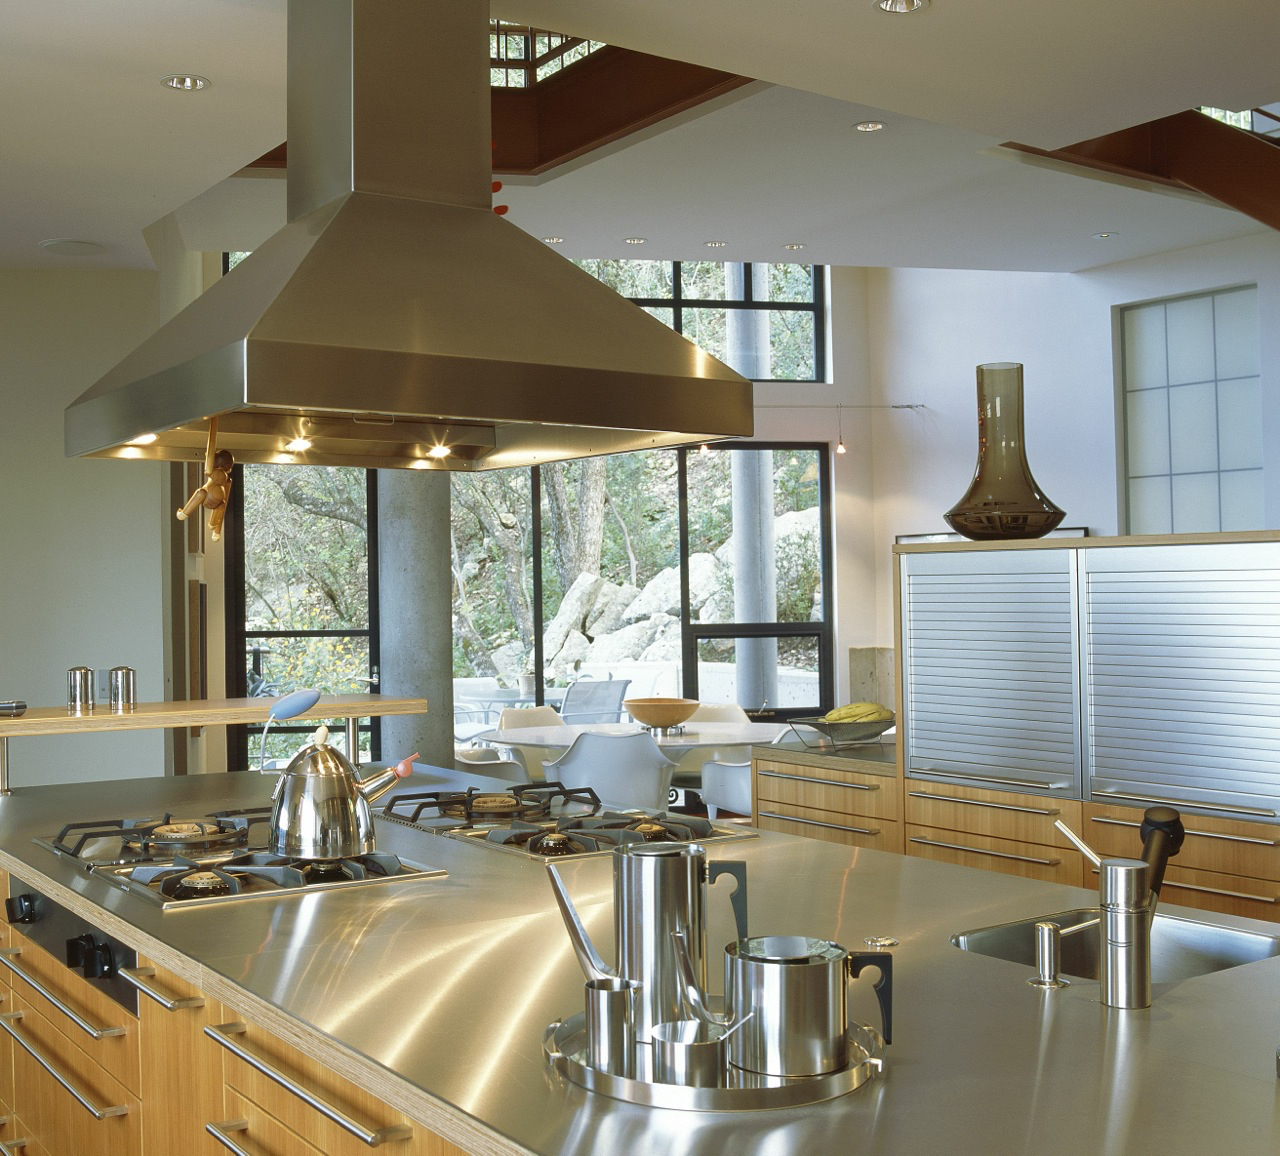 Bulthaup kitchen with stainless steel countertops.